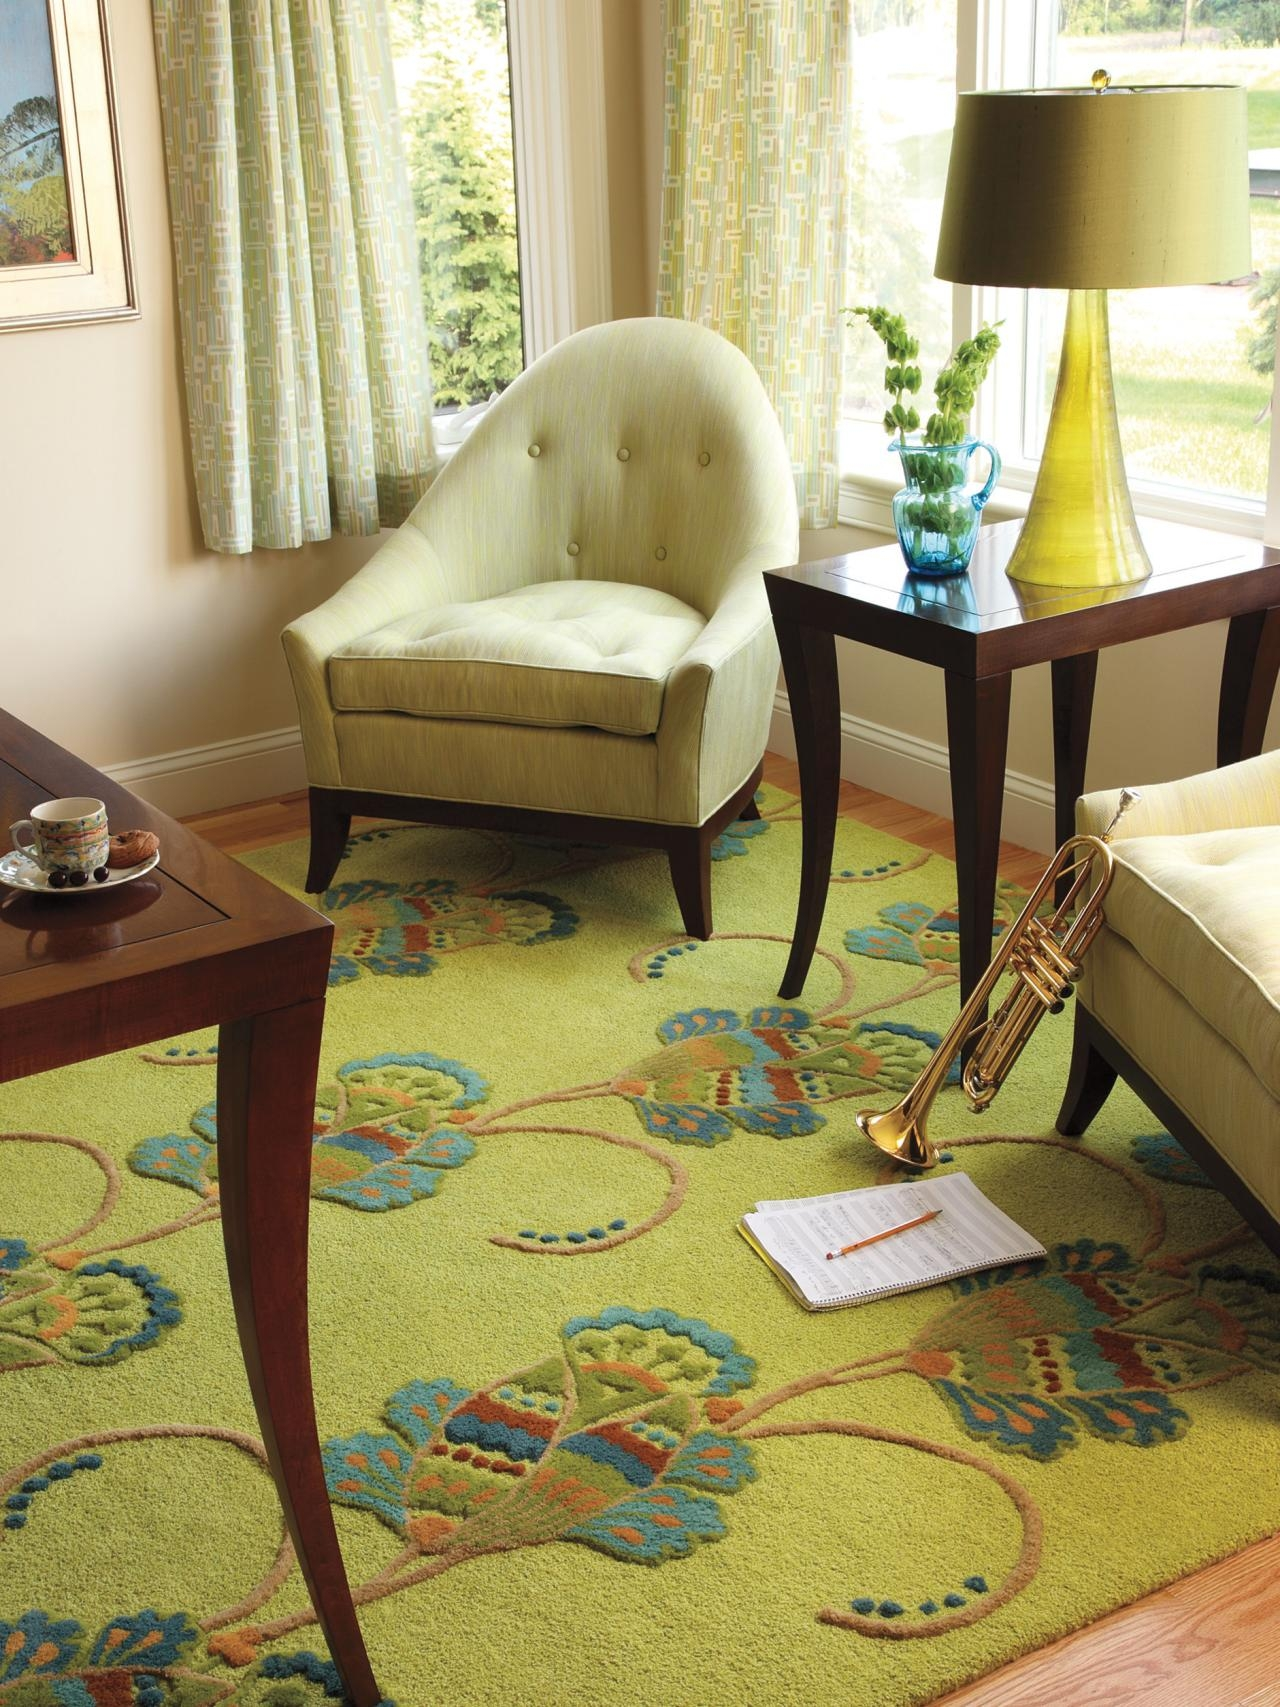 Fabulous Decorative Design company c rugs with harmony colors for indoor or outdoor ideas